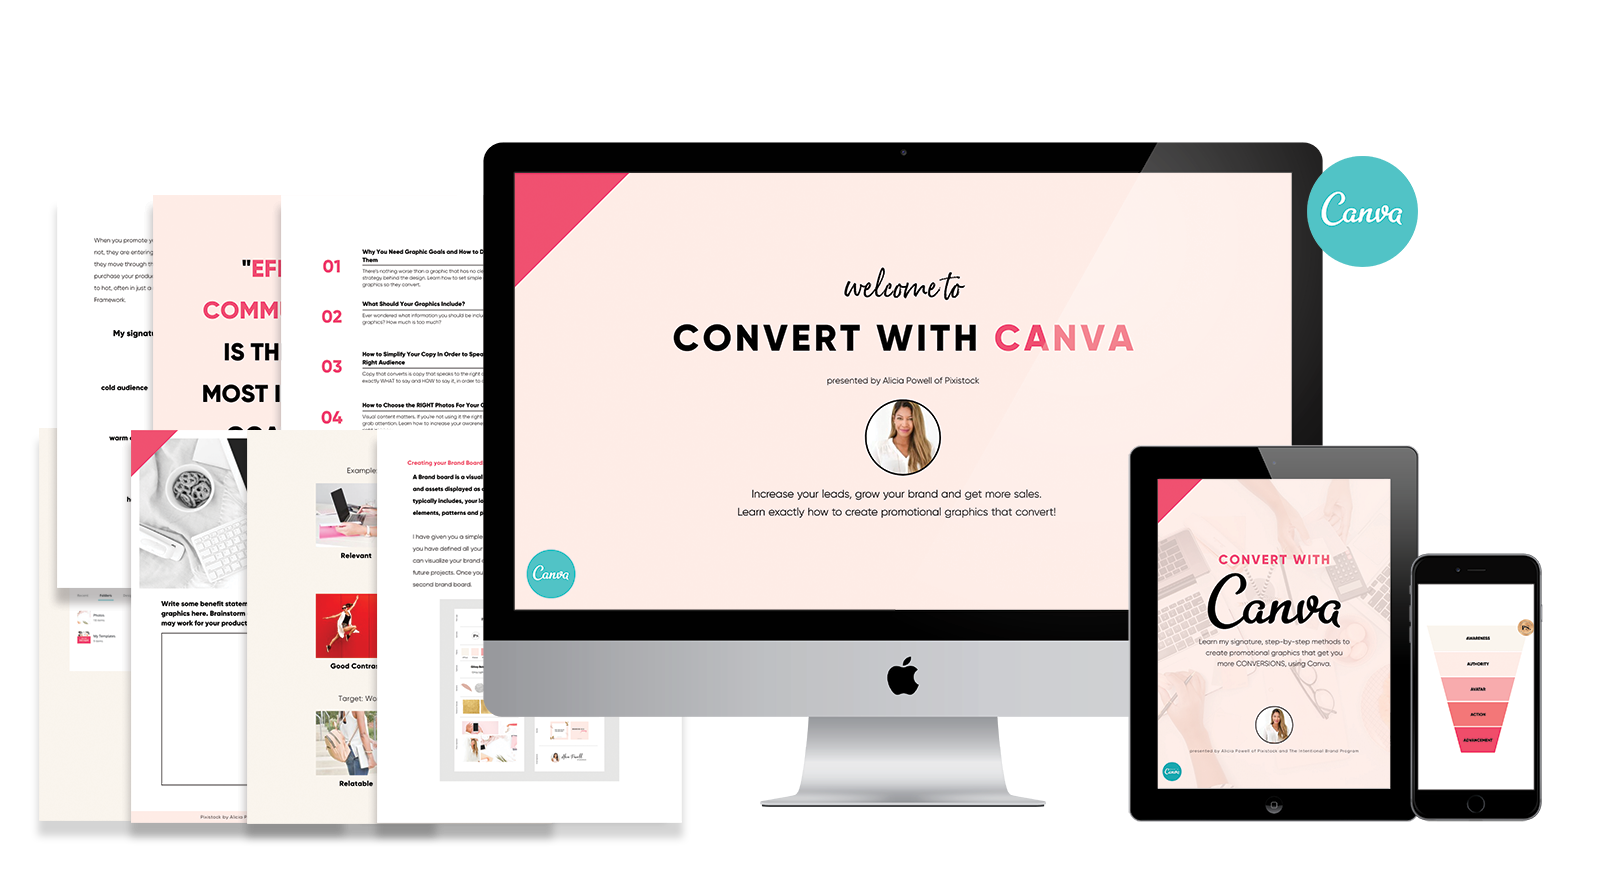 Convert with Canva